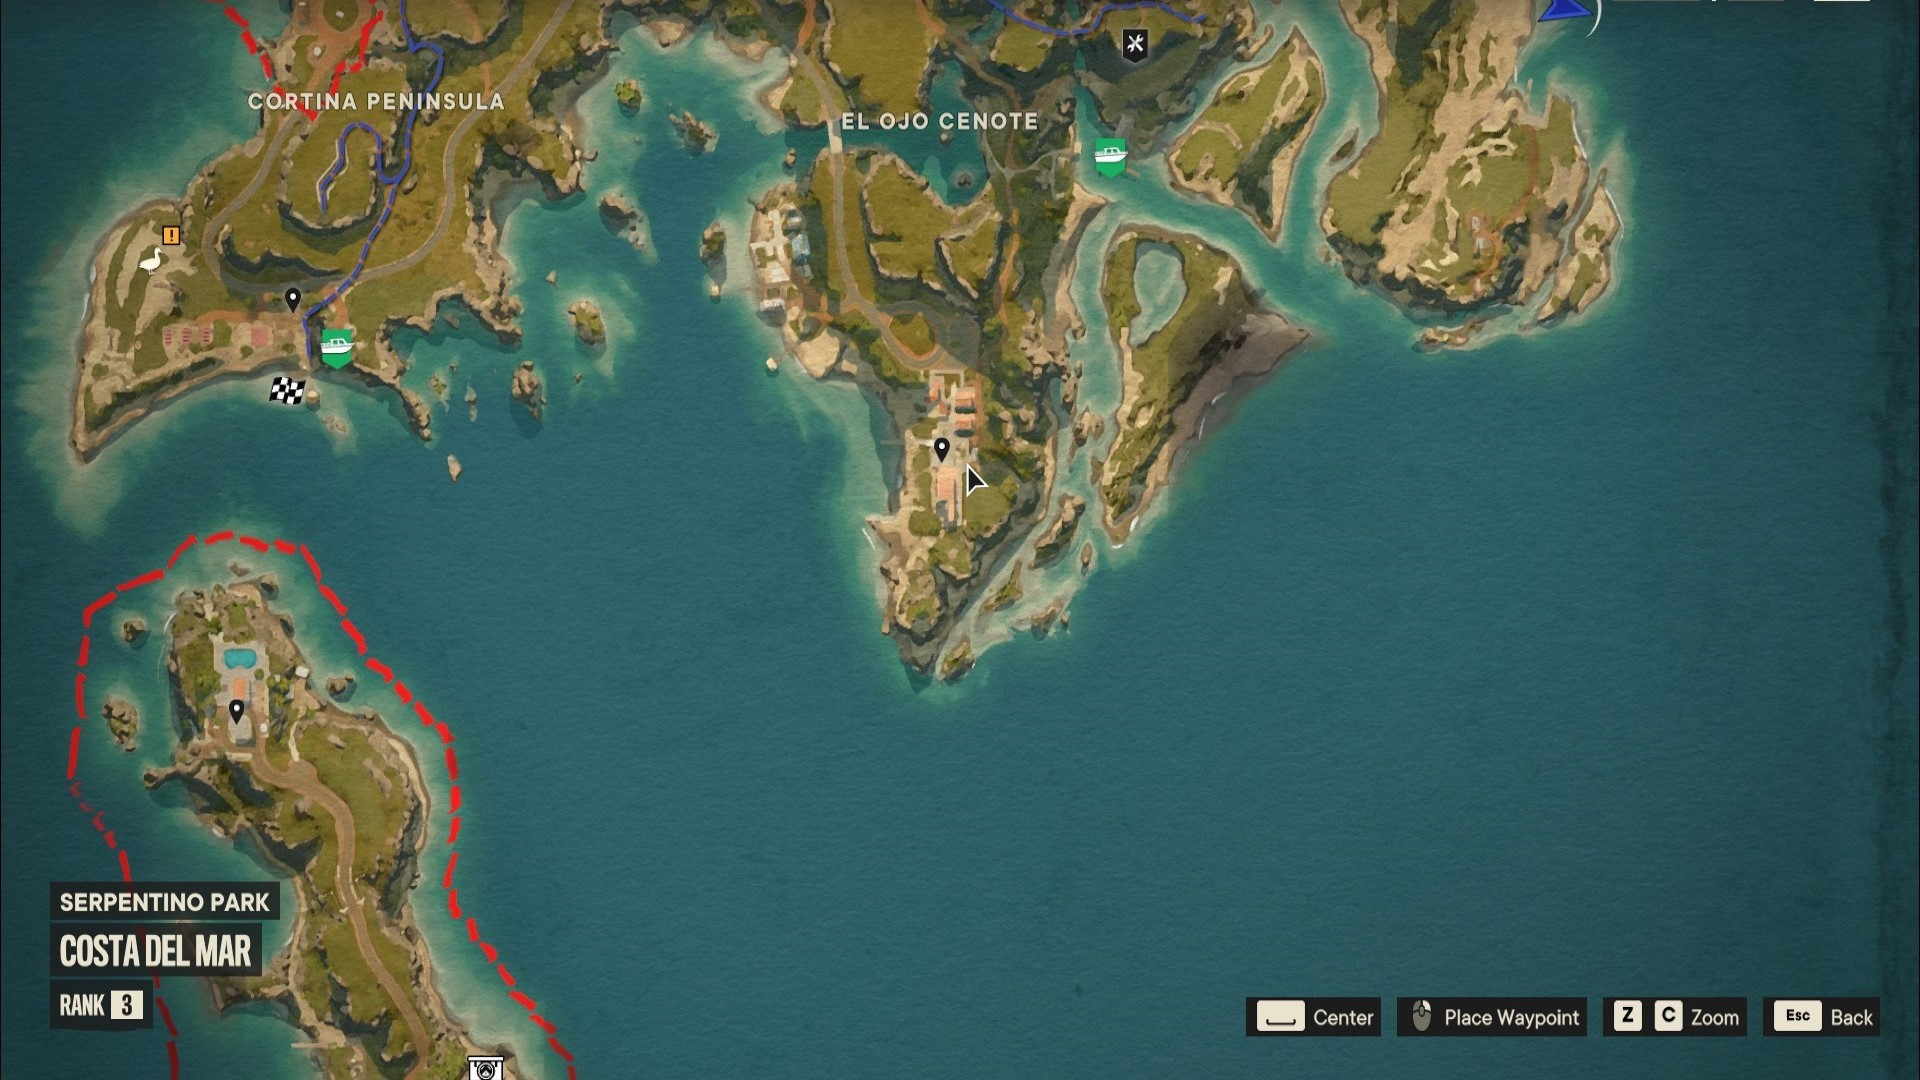 A Far Cry 6 Criptograma chest location marked on a map of Madrugada